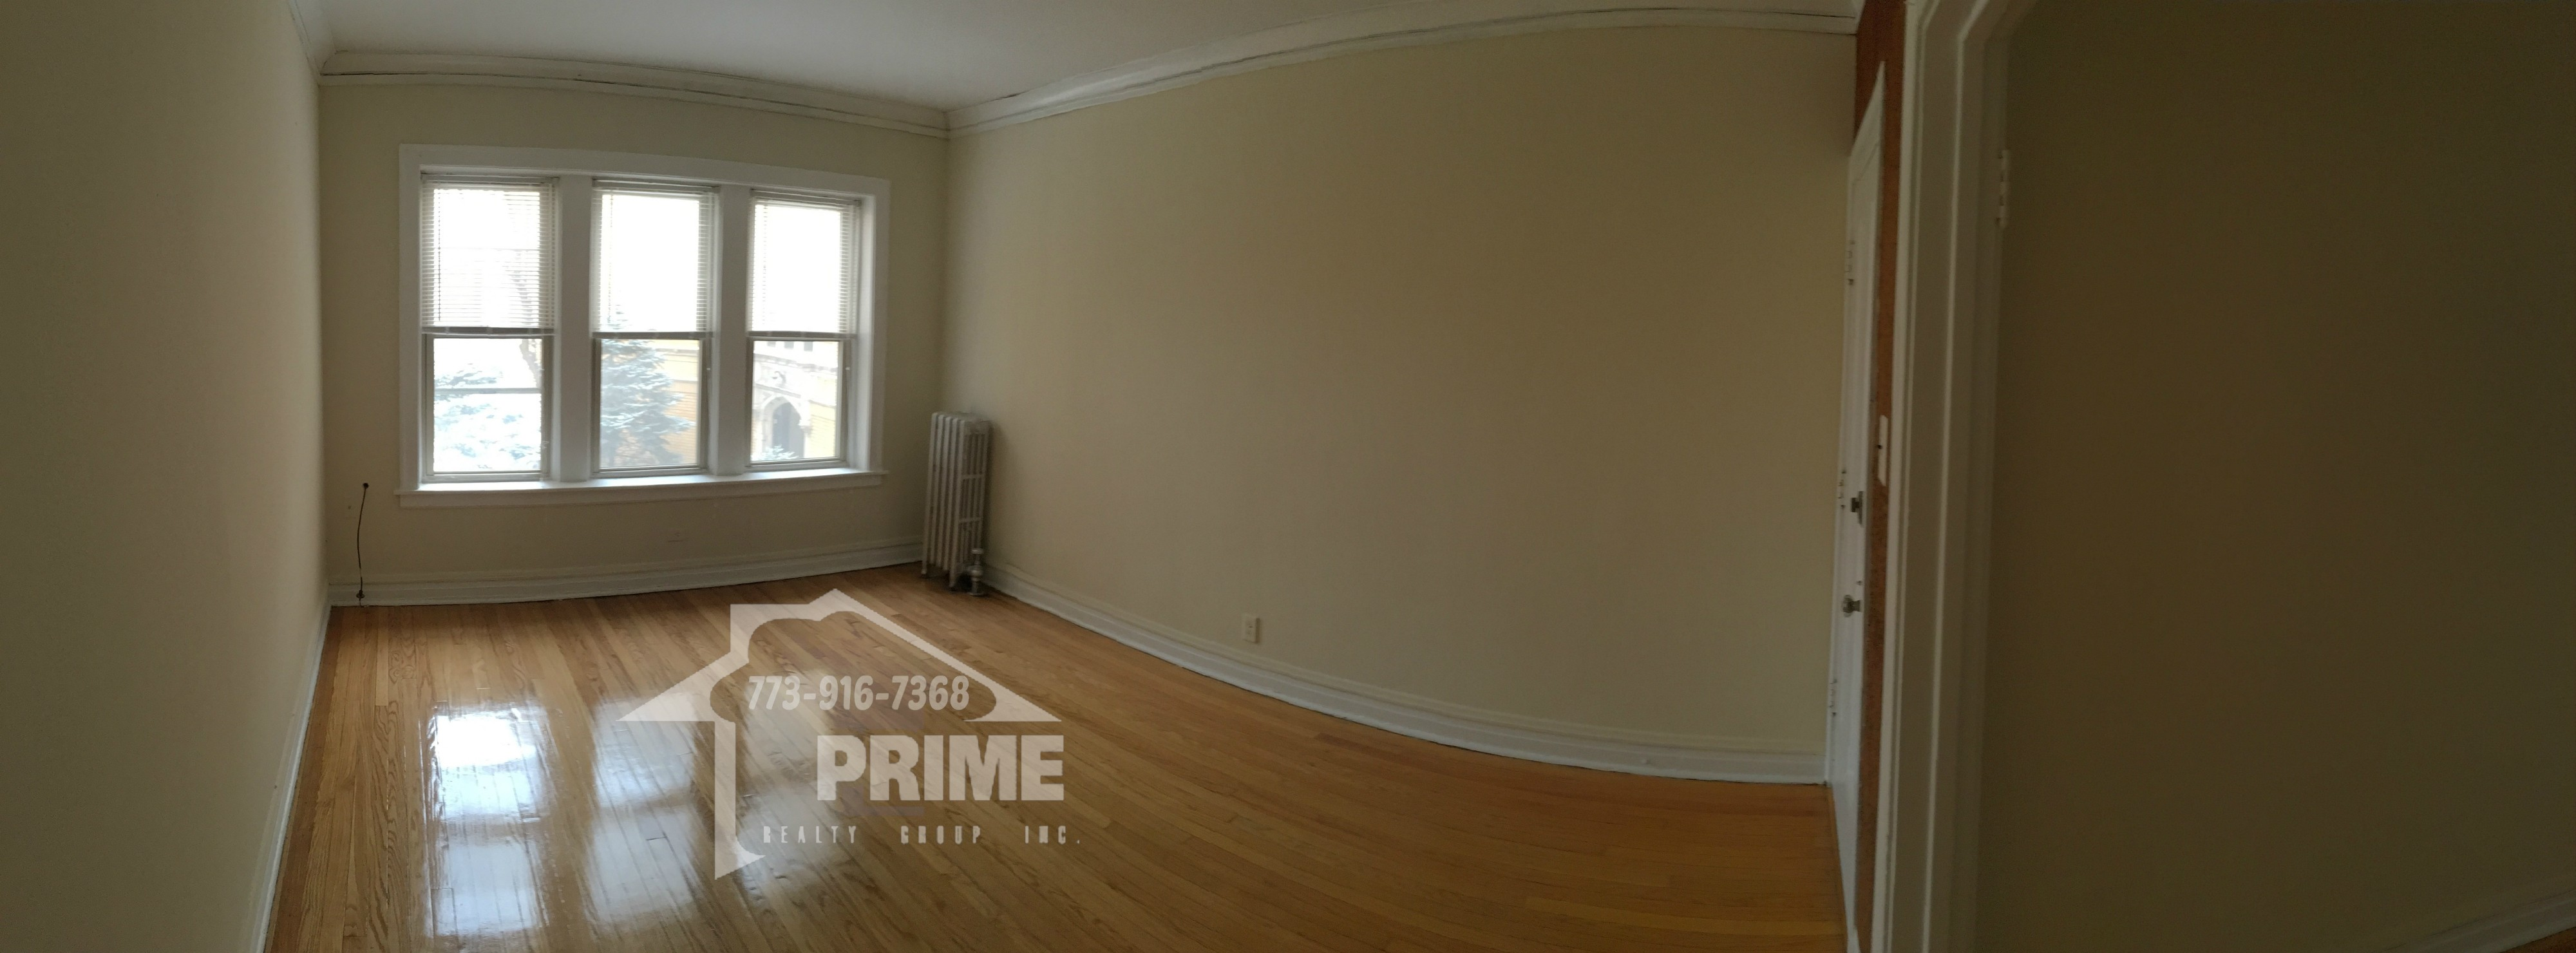 Addison Milwaukee 2 Chicago Il 60641 1 Bedroom Apartment For Rent Padmapper